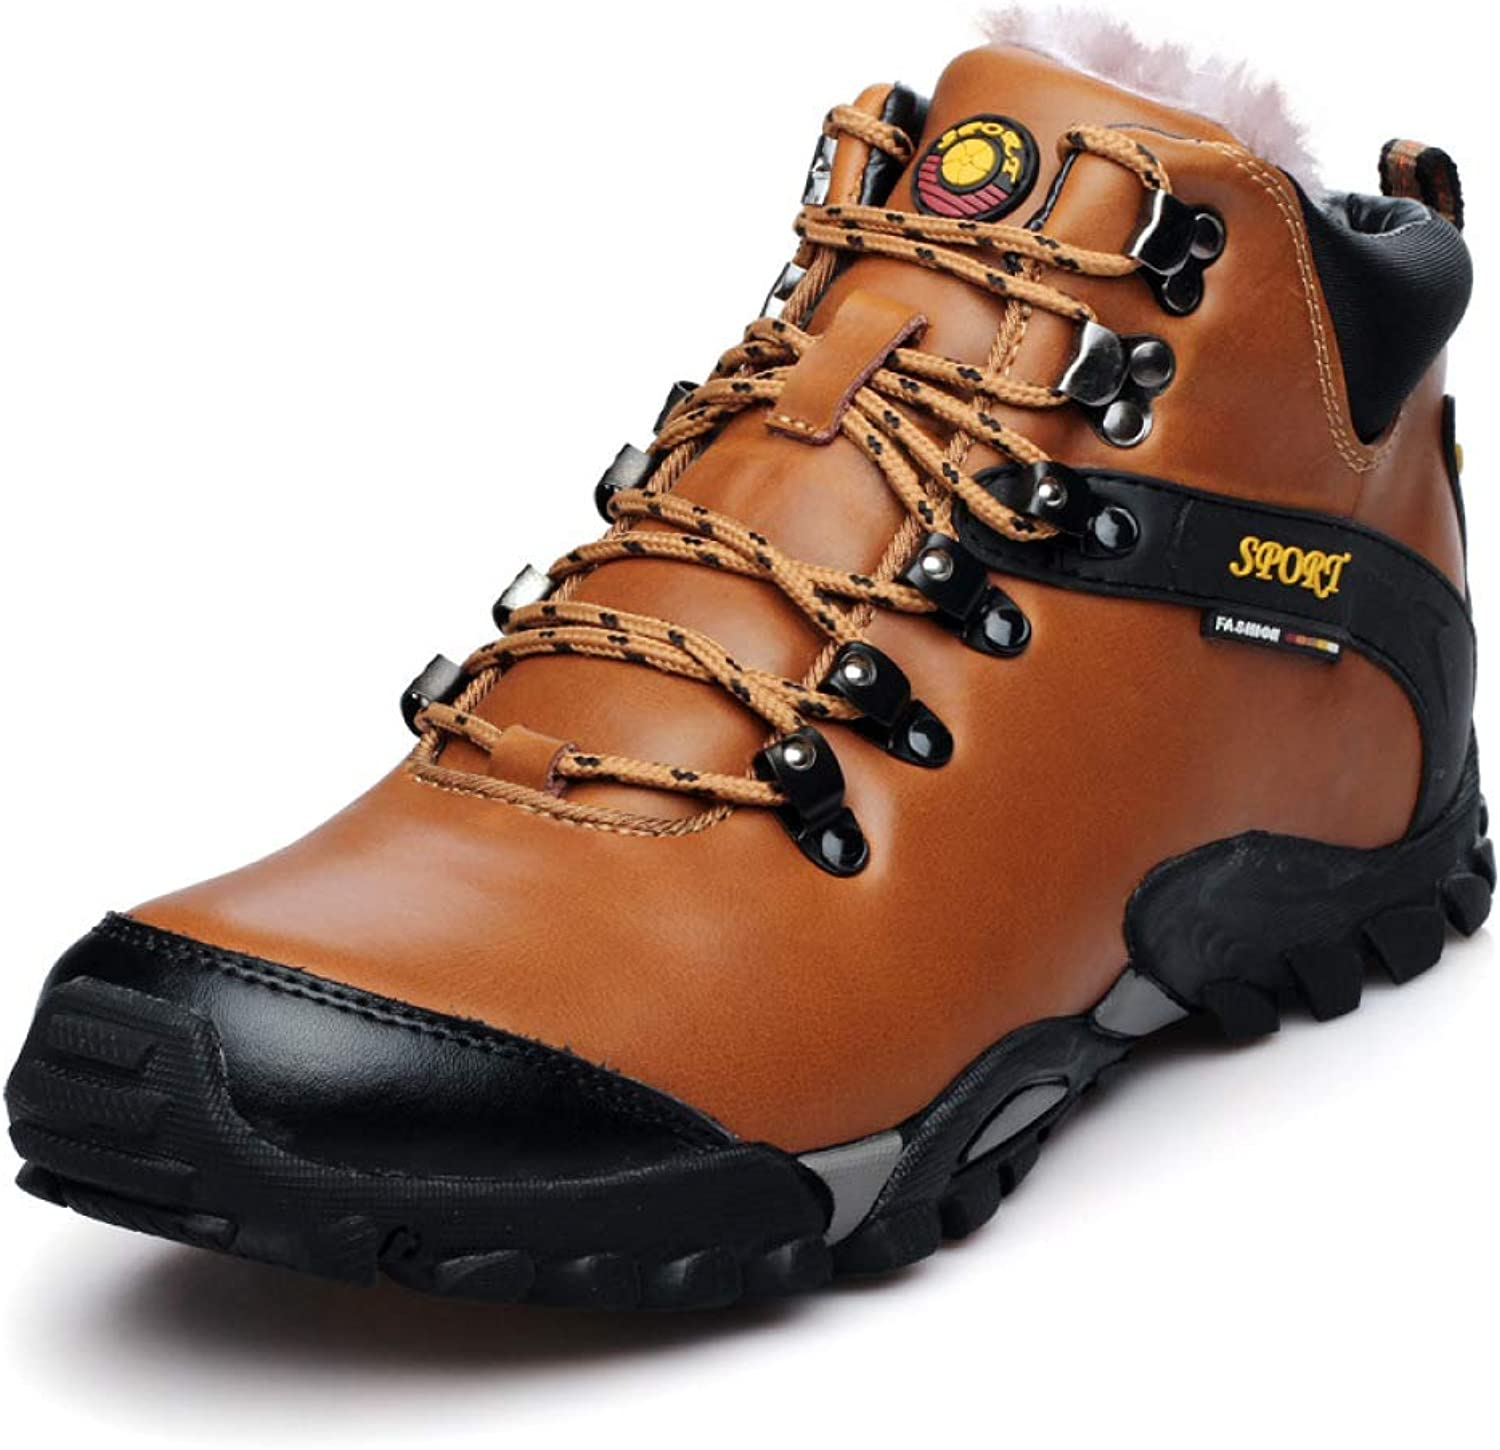 Men's Autumn and Winter Boots,Cowhide Non-Slip Soles Outdoor Hiking shoes